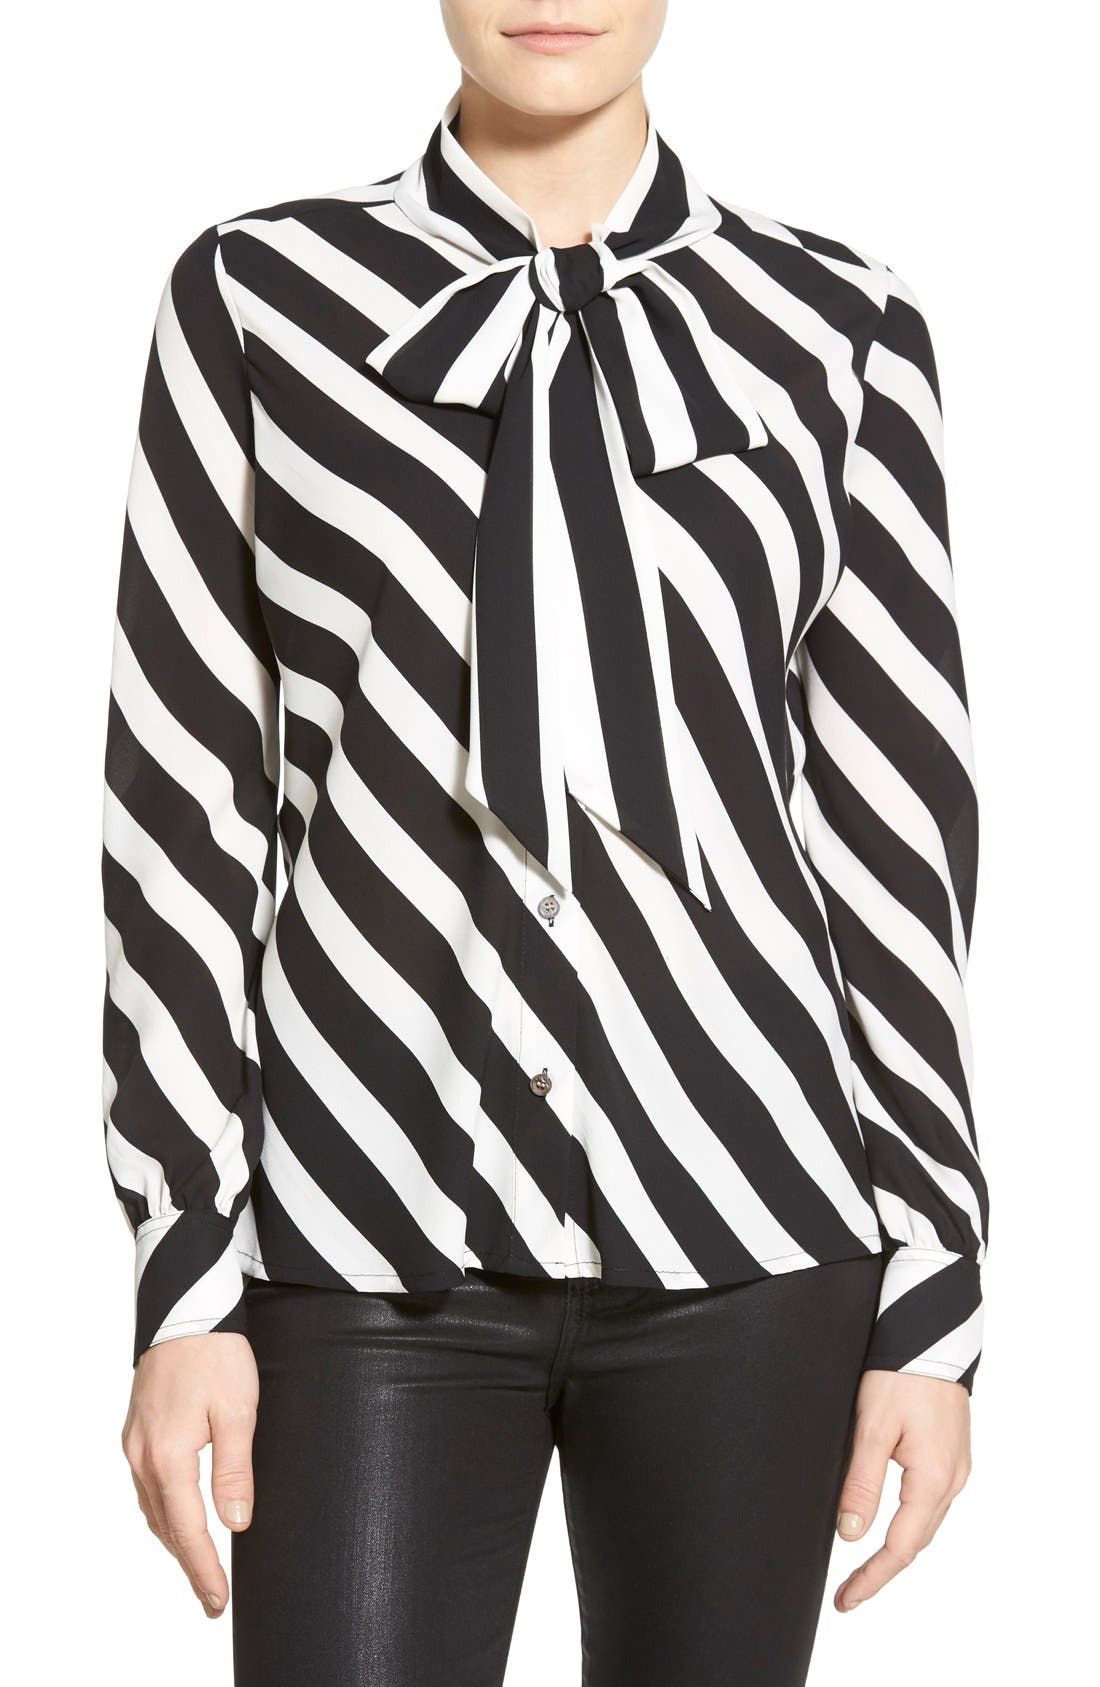 Alternate Image 1 Selected - Vince Camuto 'Runway Stripe' Tie Neck Blouse